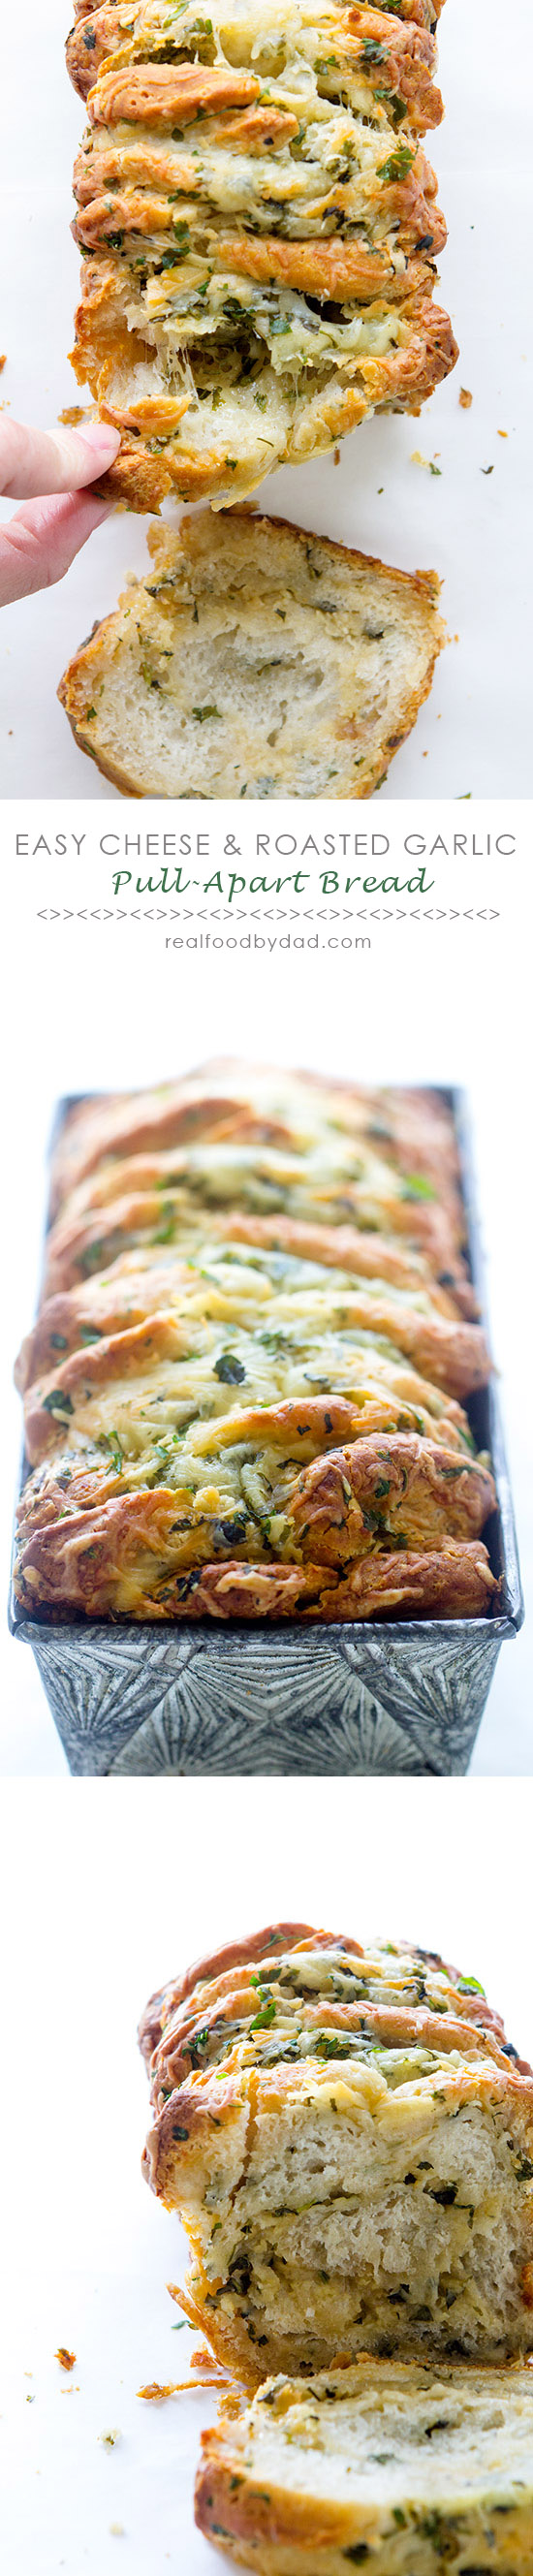 Easy Cheese And Garlic Pull Apart Bread